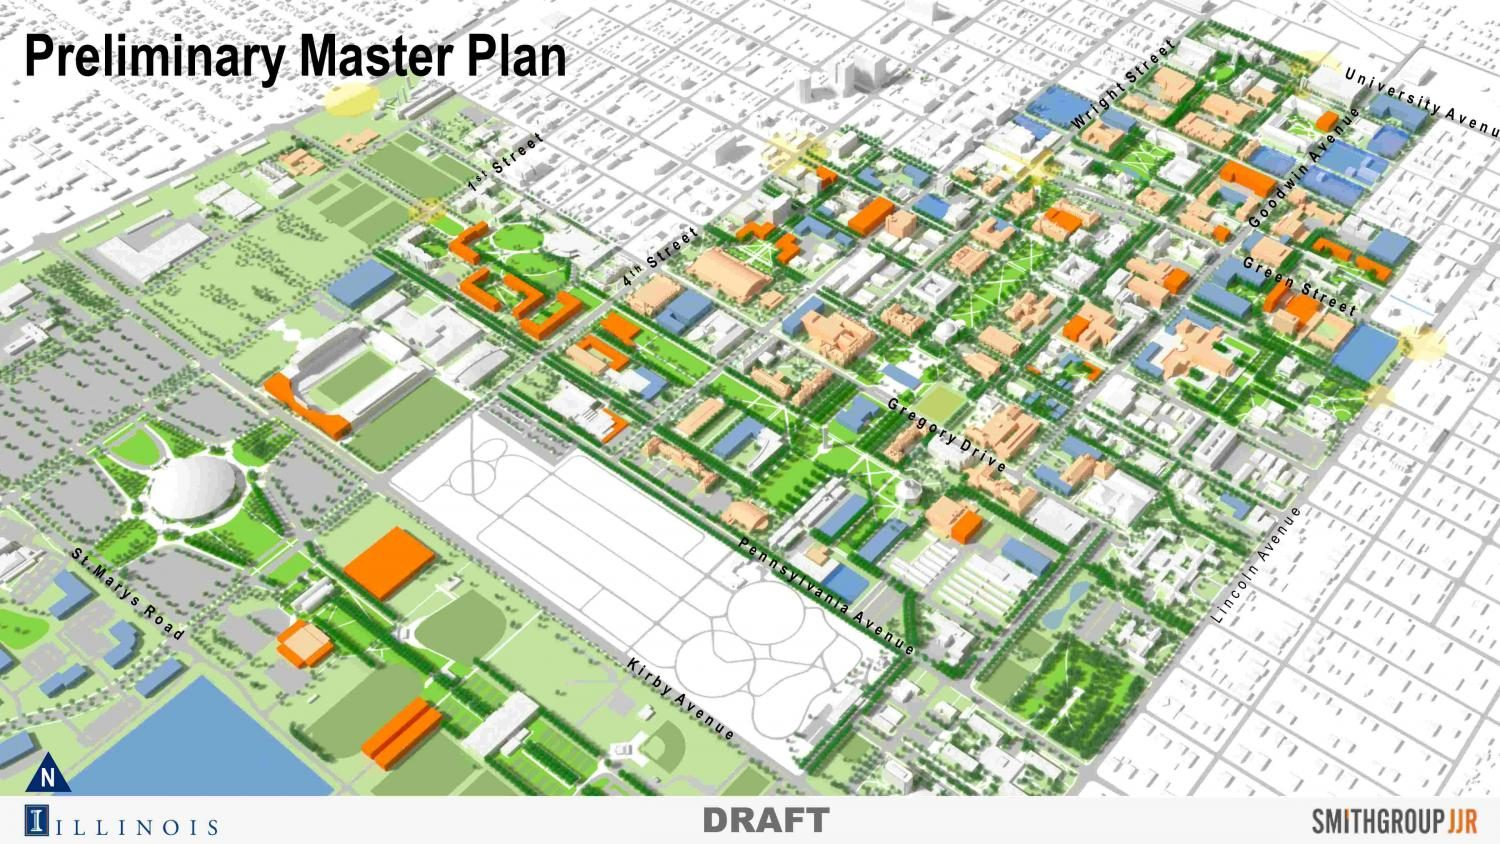 The+University+is+currently+working+on+plans+to+develop+and+renovate+campus+infrastructure+and+land+in+the+coming+decade.+Along+with+renovations+of+buildings+around+the+Main+Quad%2C+the+plan+proposes+an+Illini+Union+South%2C+located+on+the+South+Quad.+